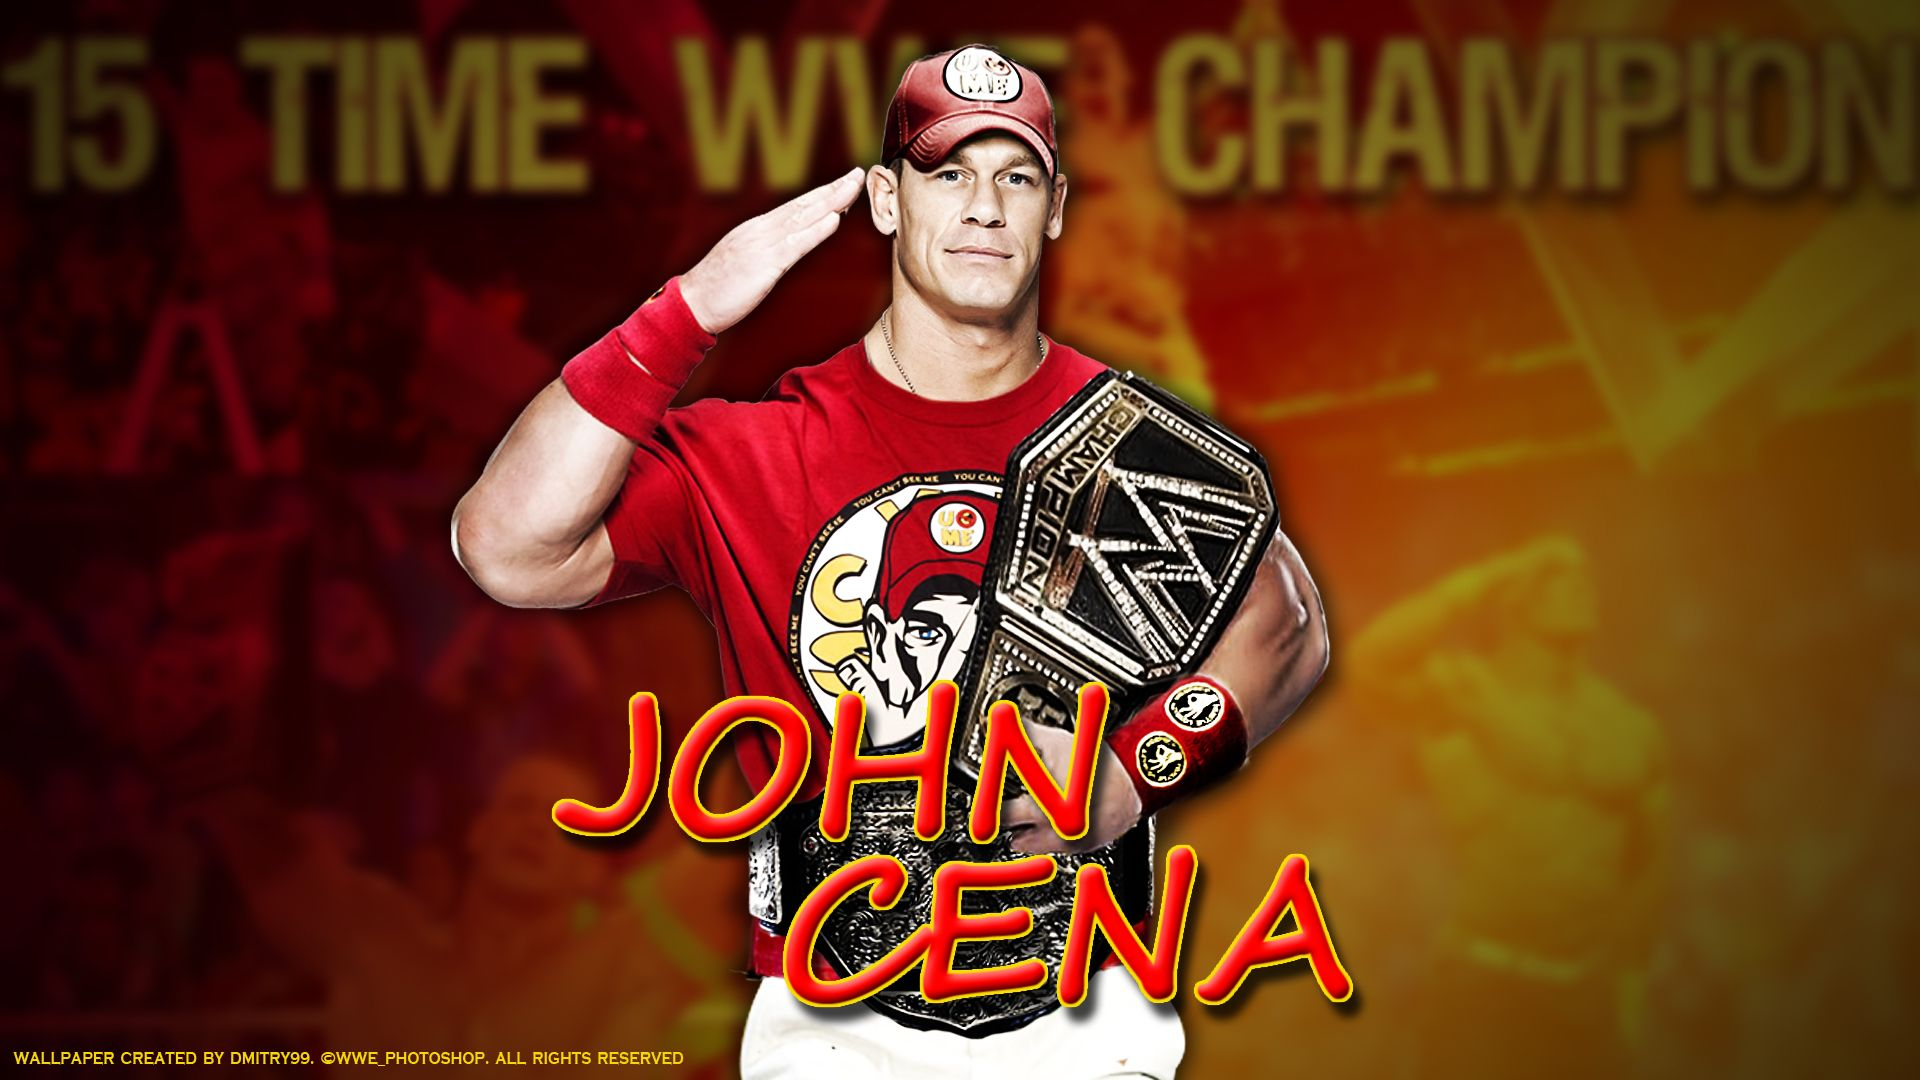 wwe john cena wallpapers hd free download 1920×1080 john cena